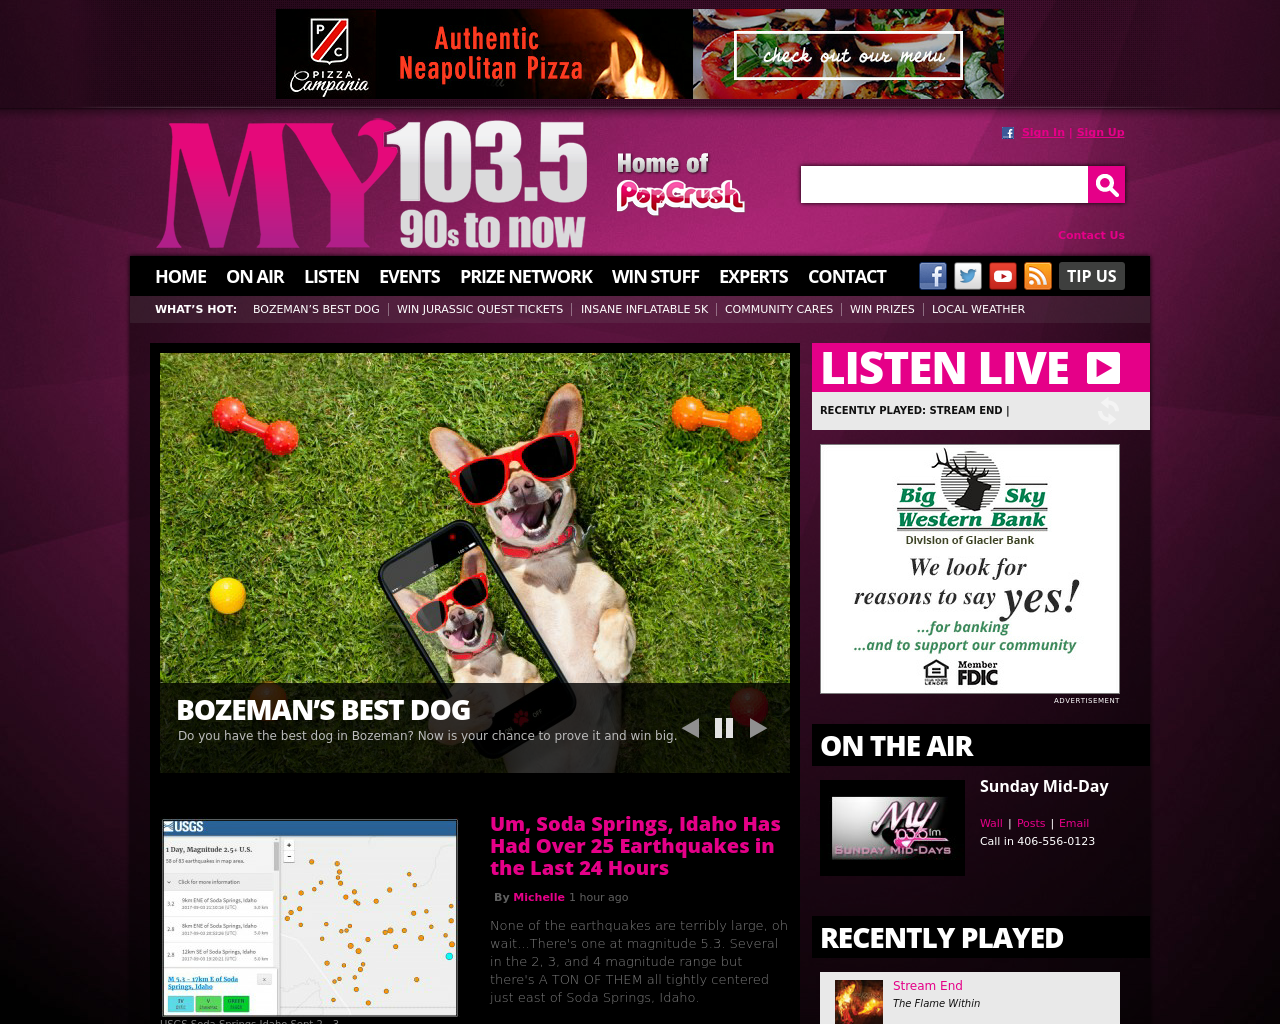 MY-103.5--Home-of-PopCrush-Advertising-Reviews-Pricing